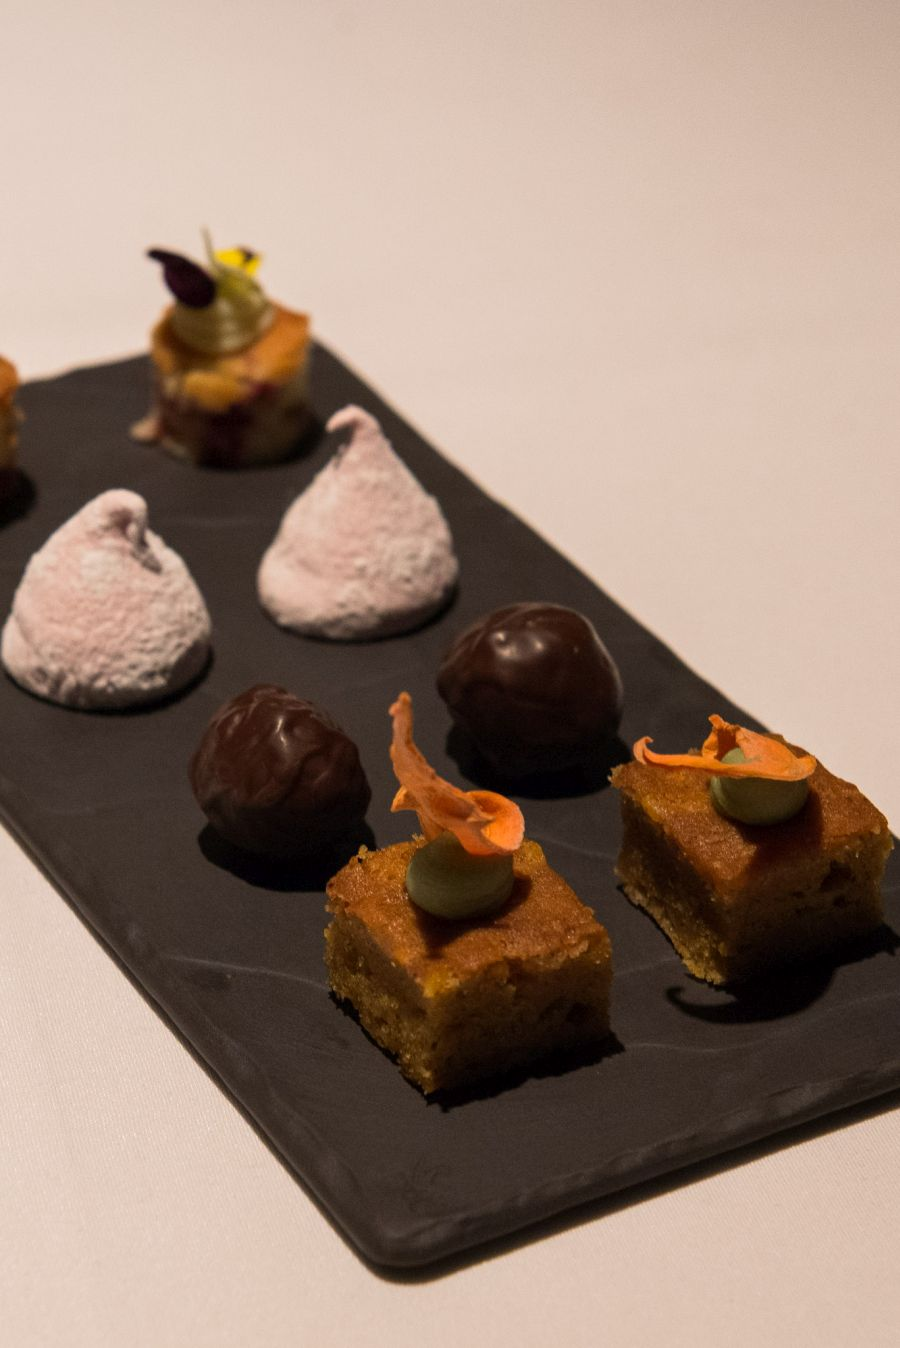 The 'things' served with coffee: carrot cake with dehydrated carrot and green tea ganache; Captain Morgan rum balls, marshmallow and white chocolate and raspberry torte